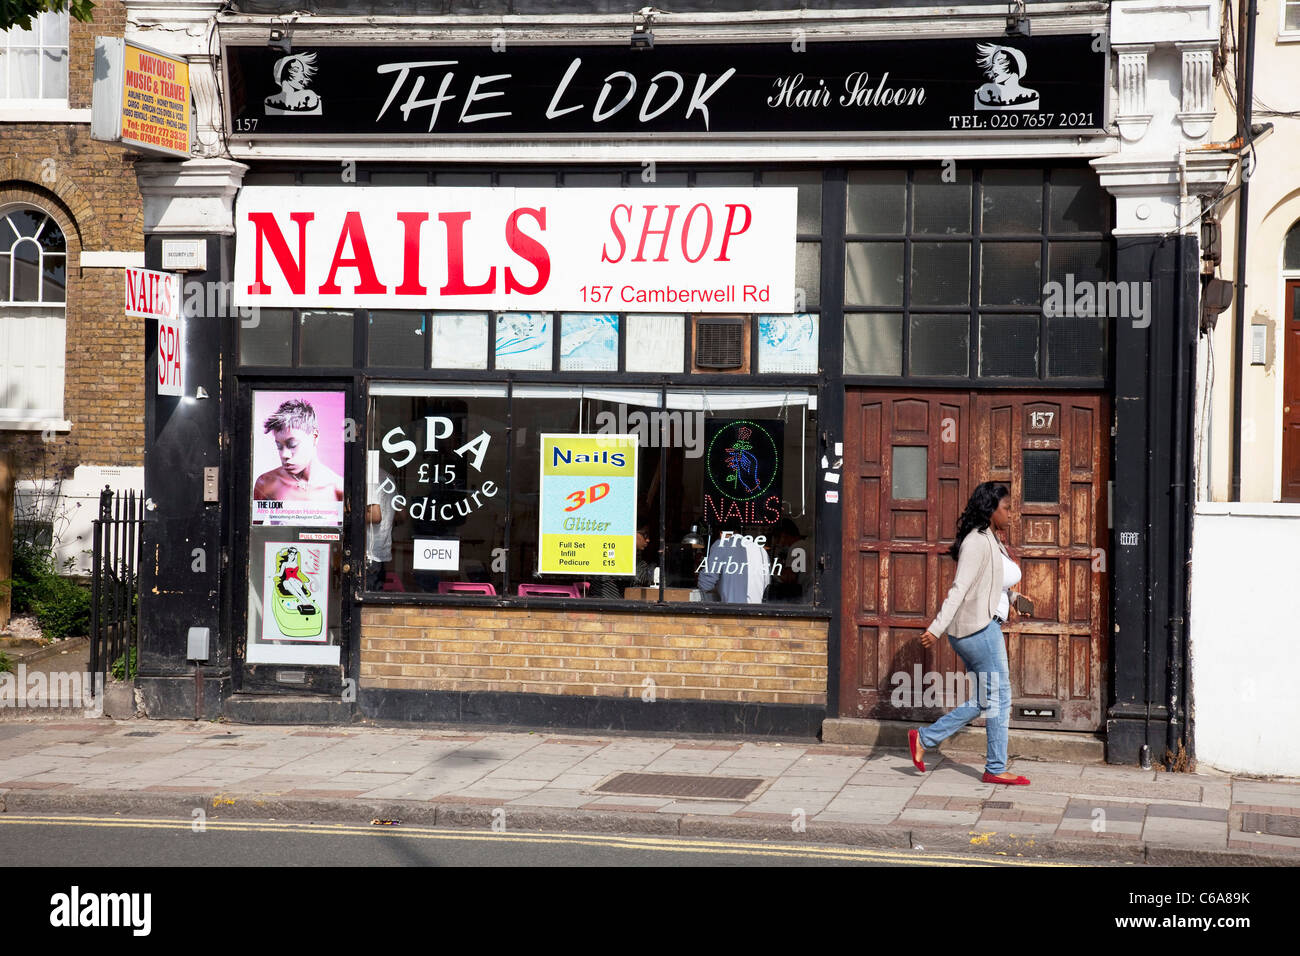 The Look Hair Salon And Nail Bar Shop On Camberwell Road In South - The look hair salon